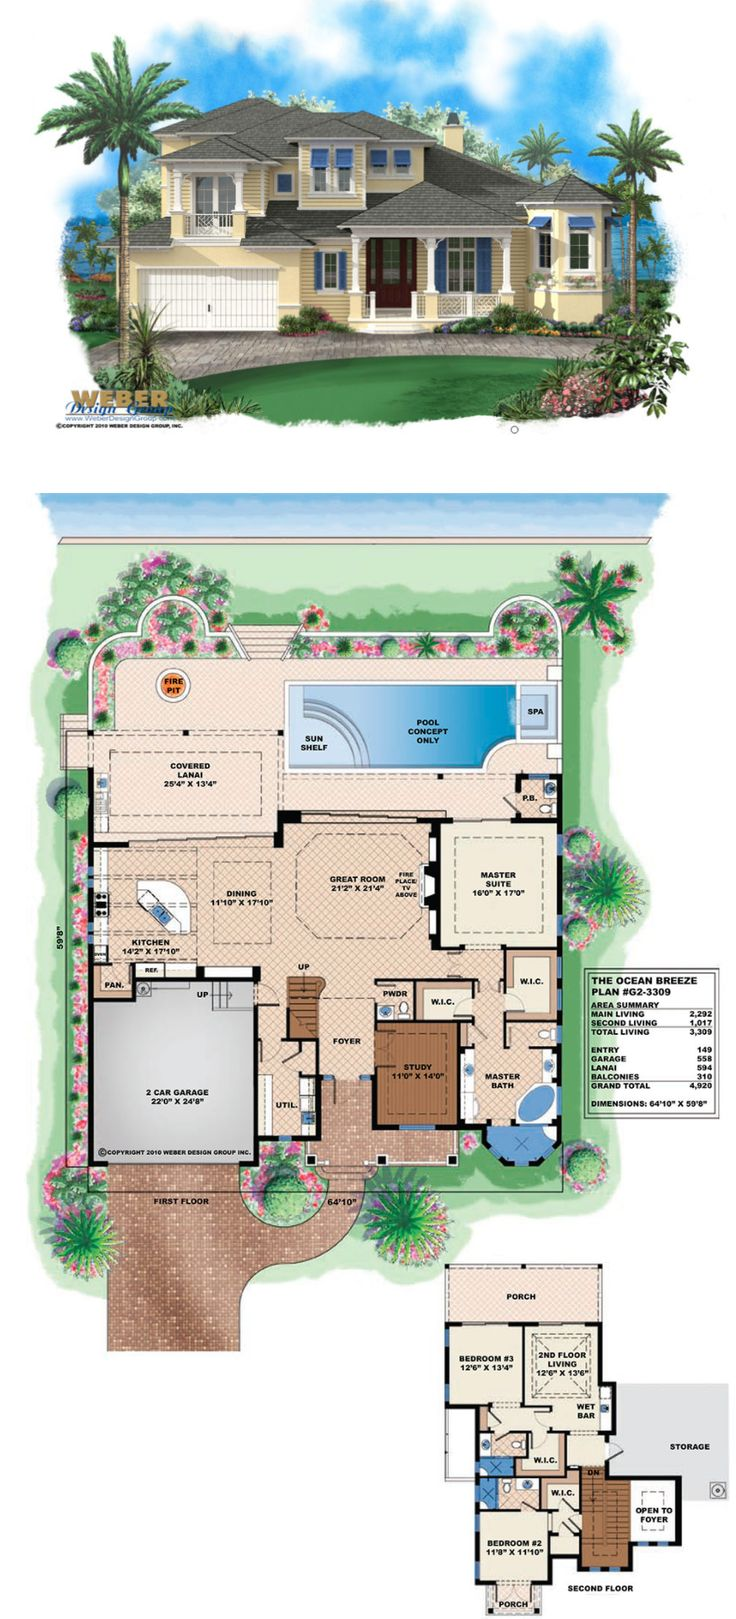 This two-story Olde Florida and Key West inspired home plan has a covered porch entry with decorative railings.   More Beach House Plans:  https://www.weberdesigngroup.com/home-plans/style/beach-house-plans/